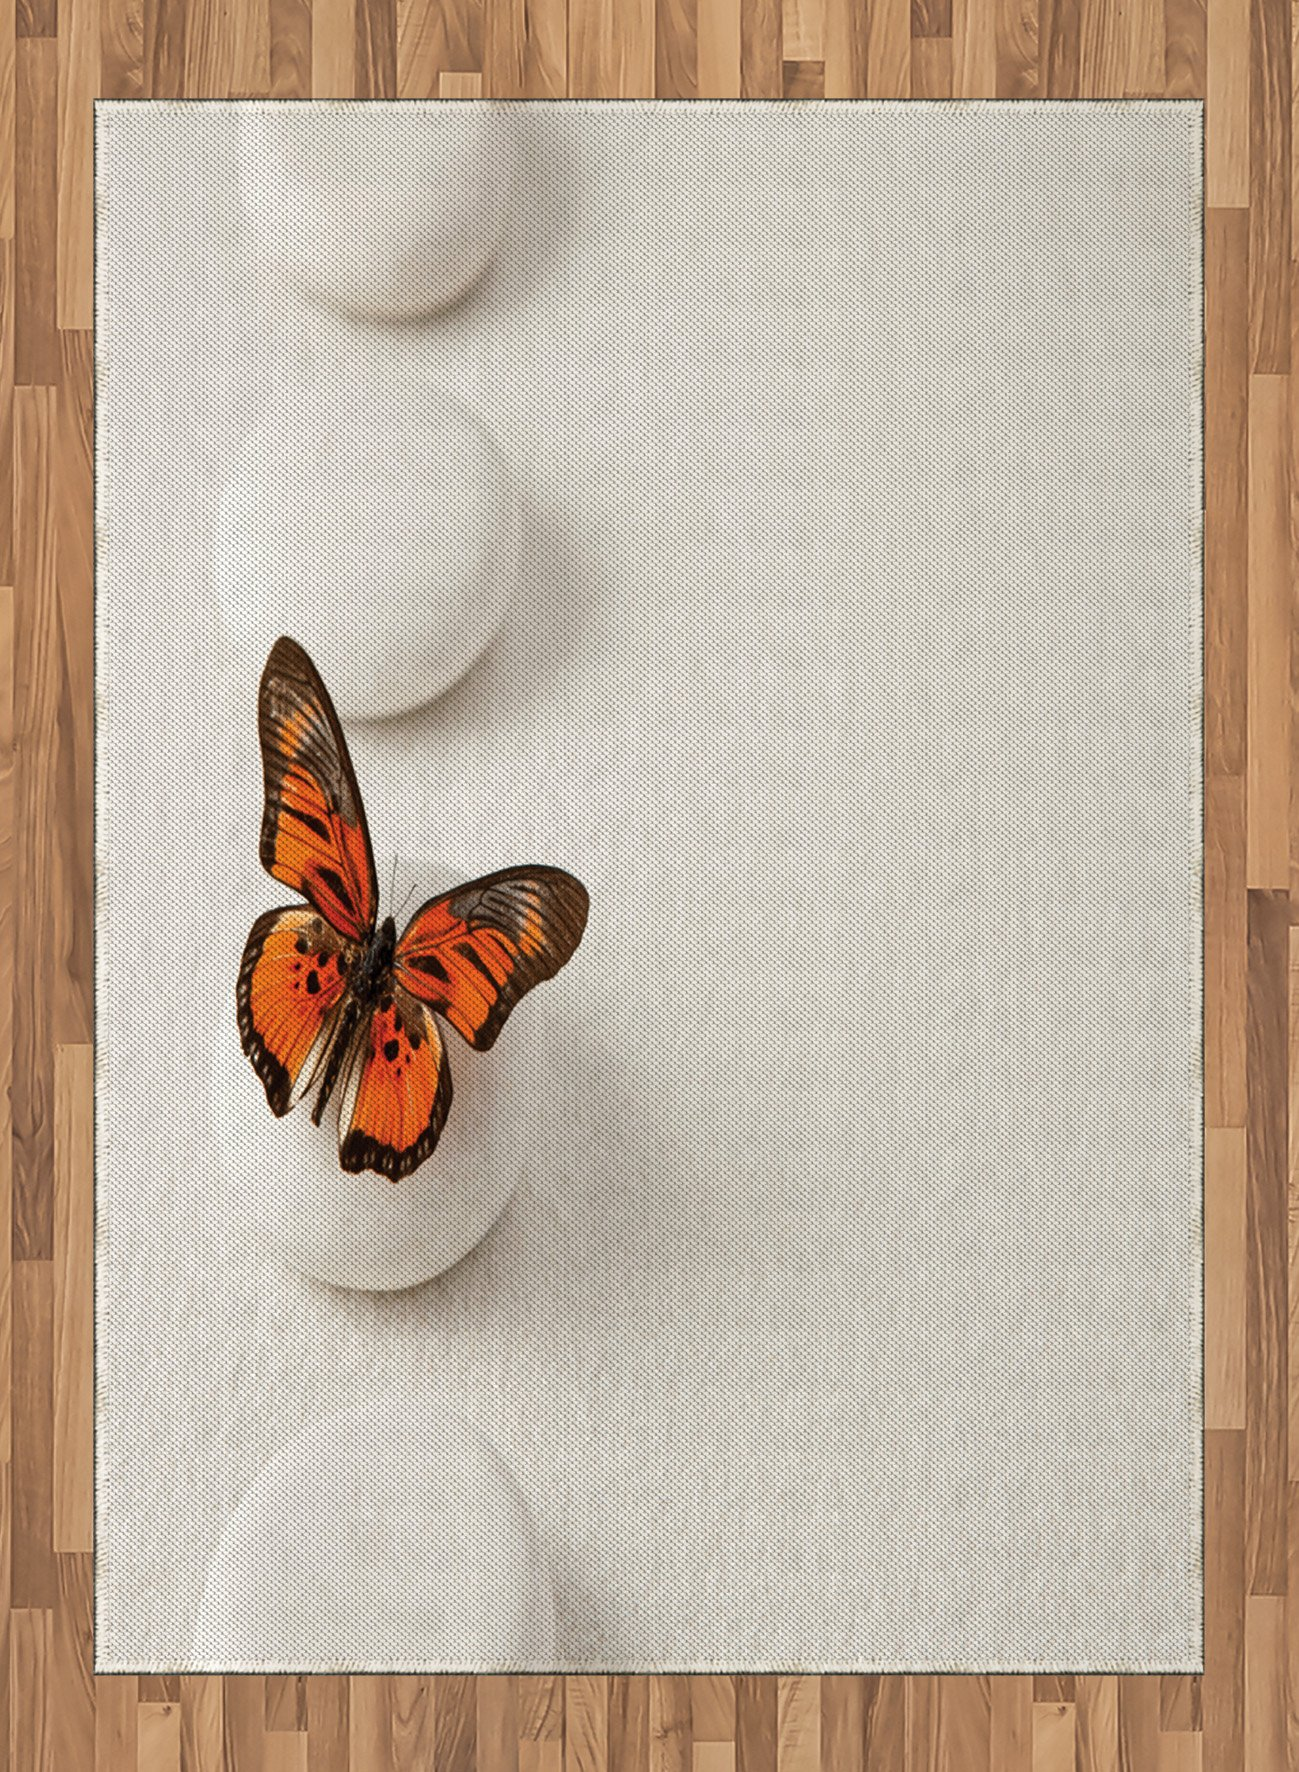 Spa Area Rug by Ambesonne, Plain Pattern with Butterfly and Rocks Wellness Purity Healing Serenity Bohemian, Flat Woven Accent Rug for Living Room Bedroom Dining Room, 5.2 x 7.5 FT, White Orange